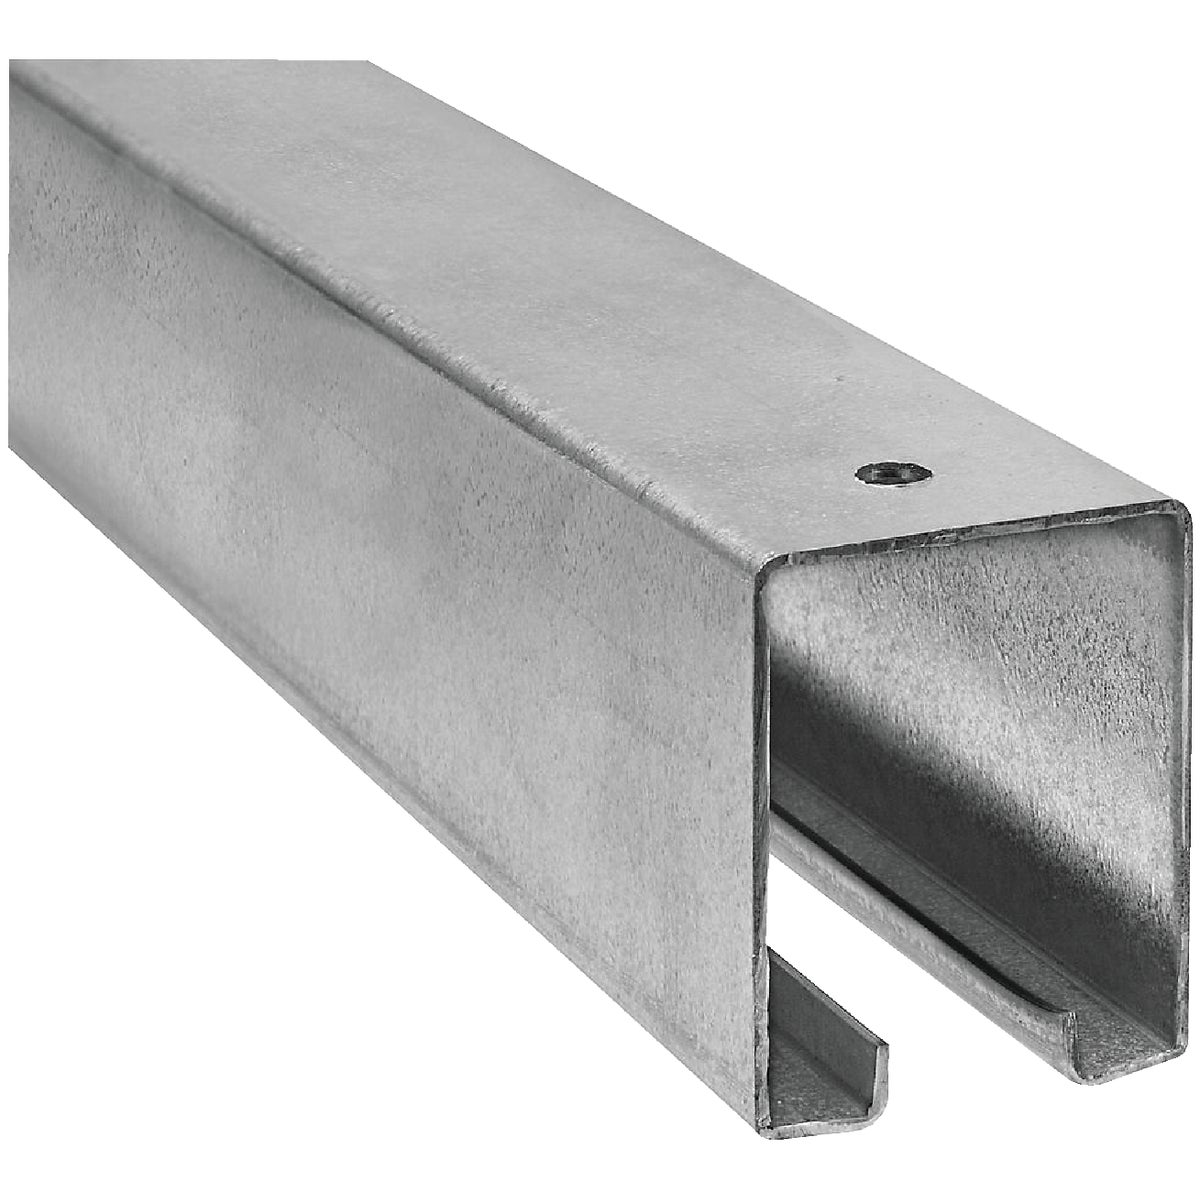 5116 12' GLV DOOR RAIL - N105270 by National Mfg Co